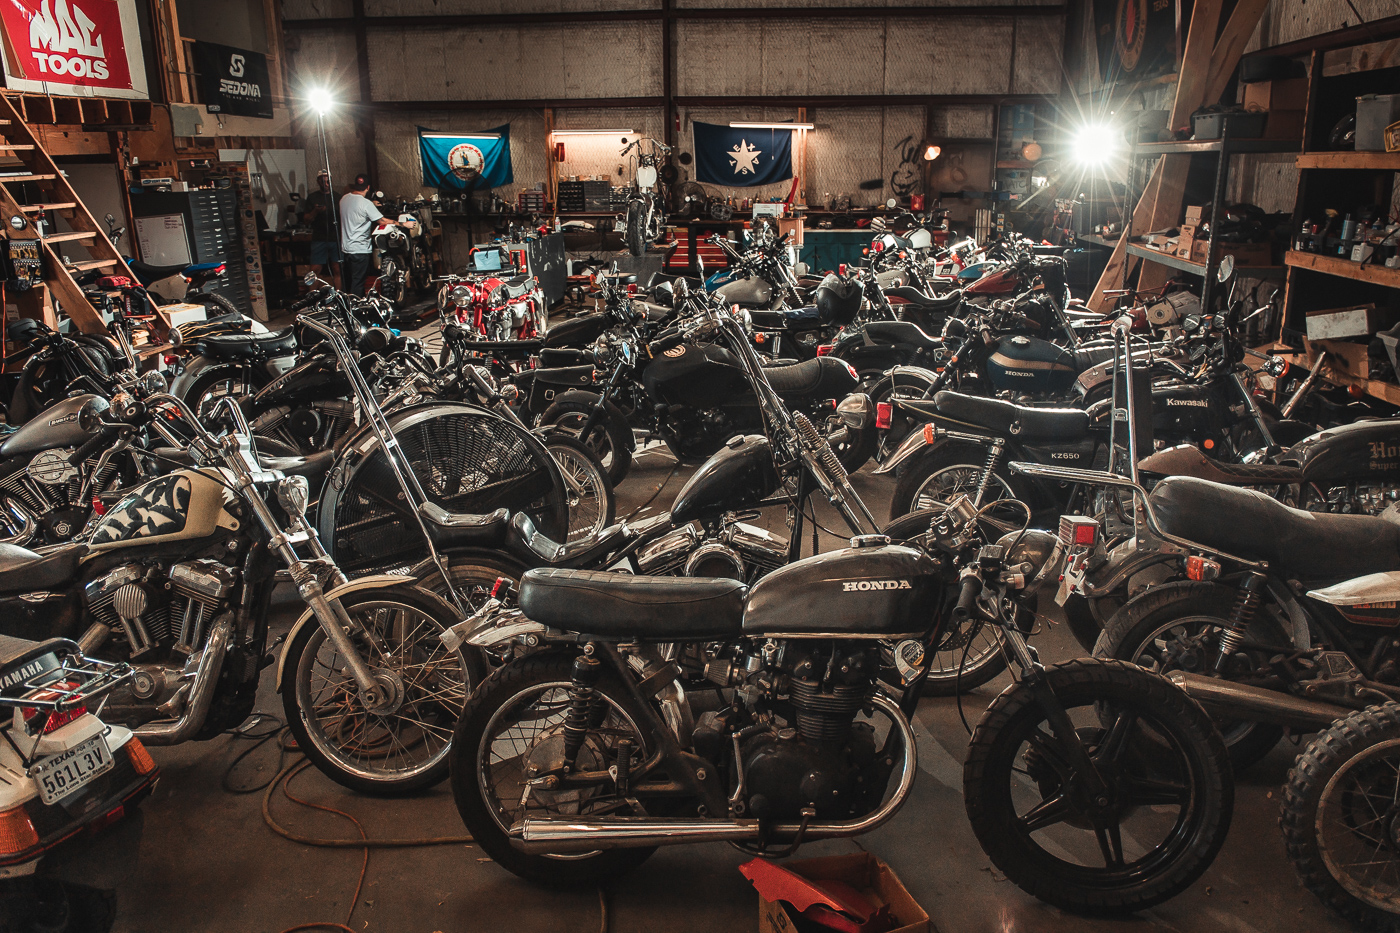 Large variety of vintage motorcycles waiting for mechanical work in an automotive shop